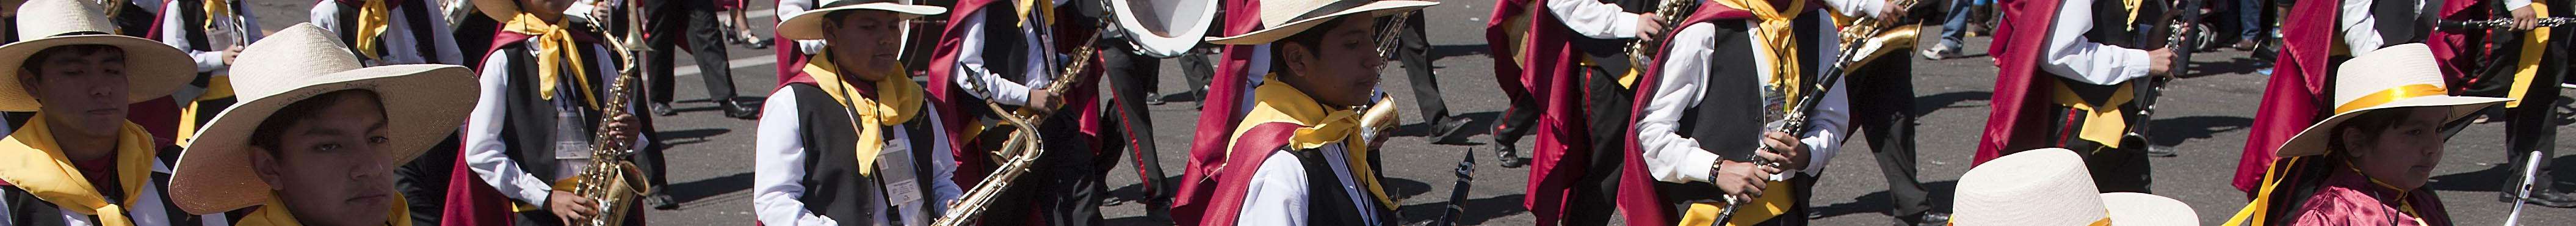 Arequipa 2012 Day Parade - Banner